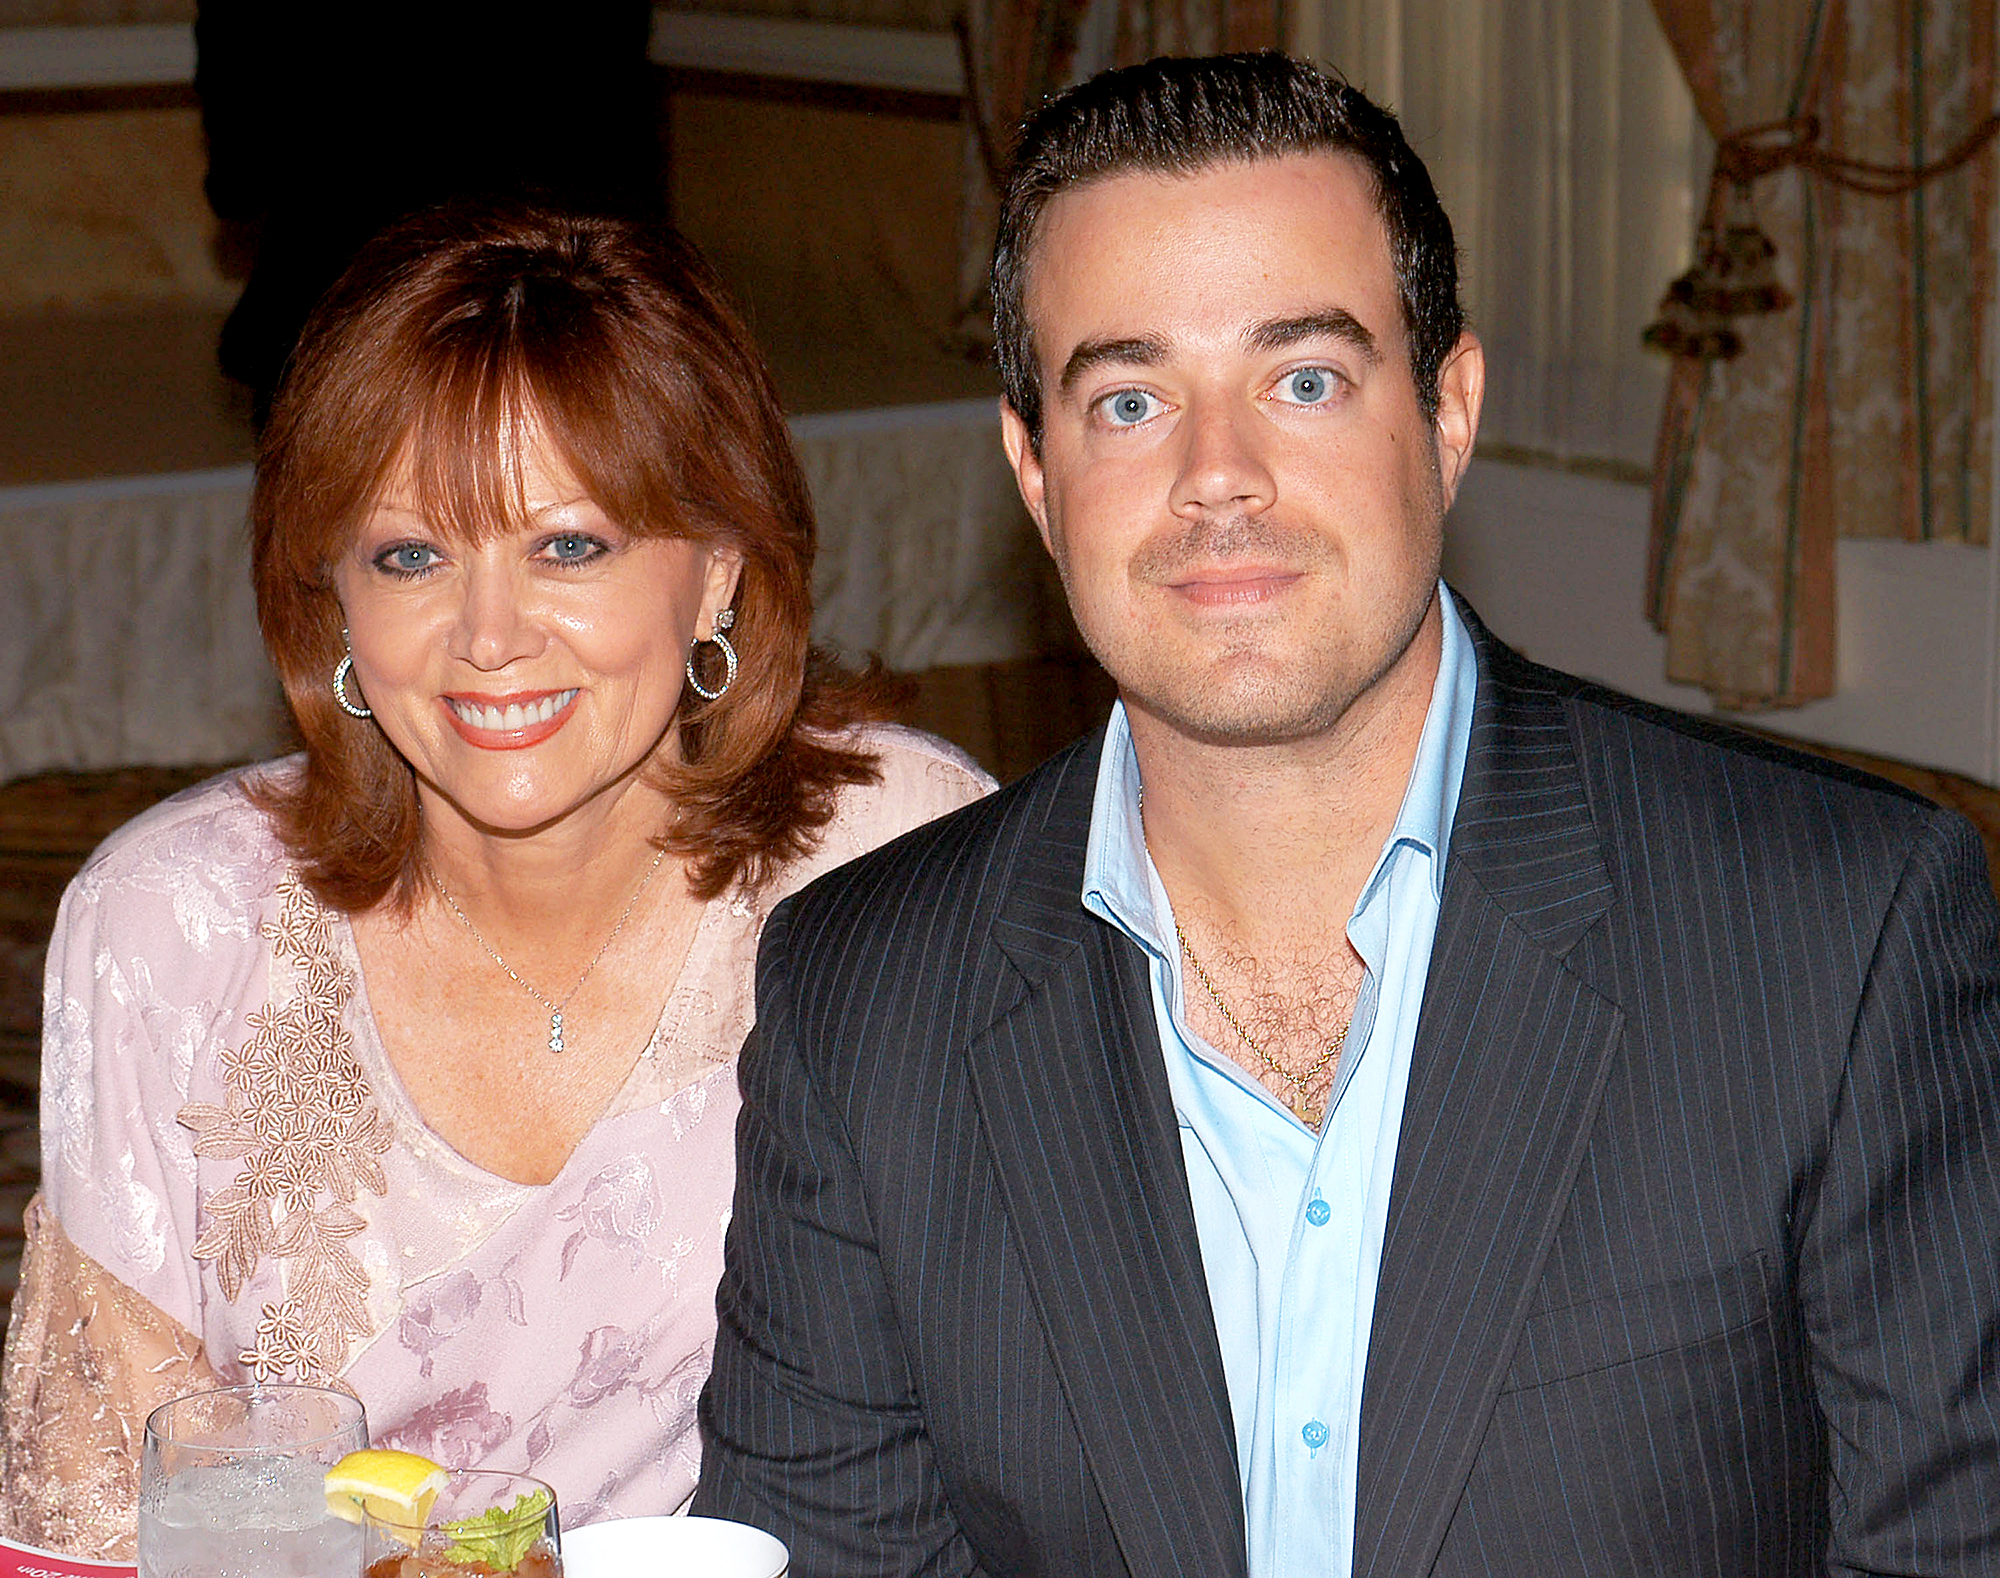 Carson Daly and Pattie Daly Caruso